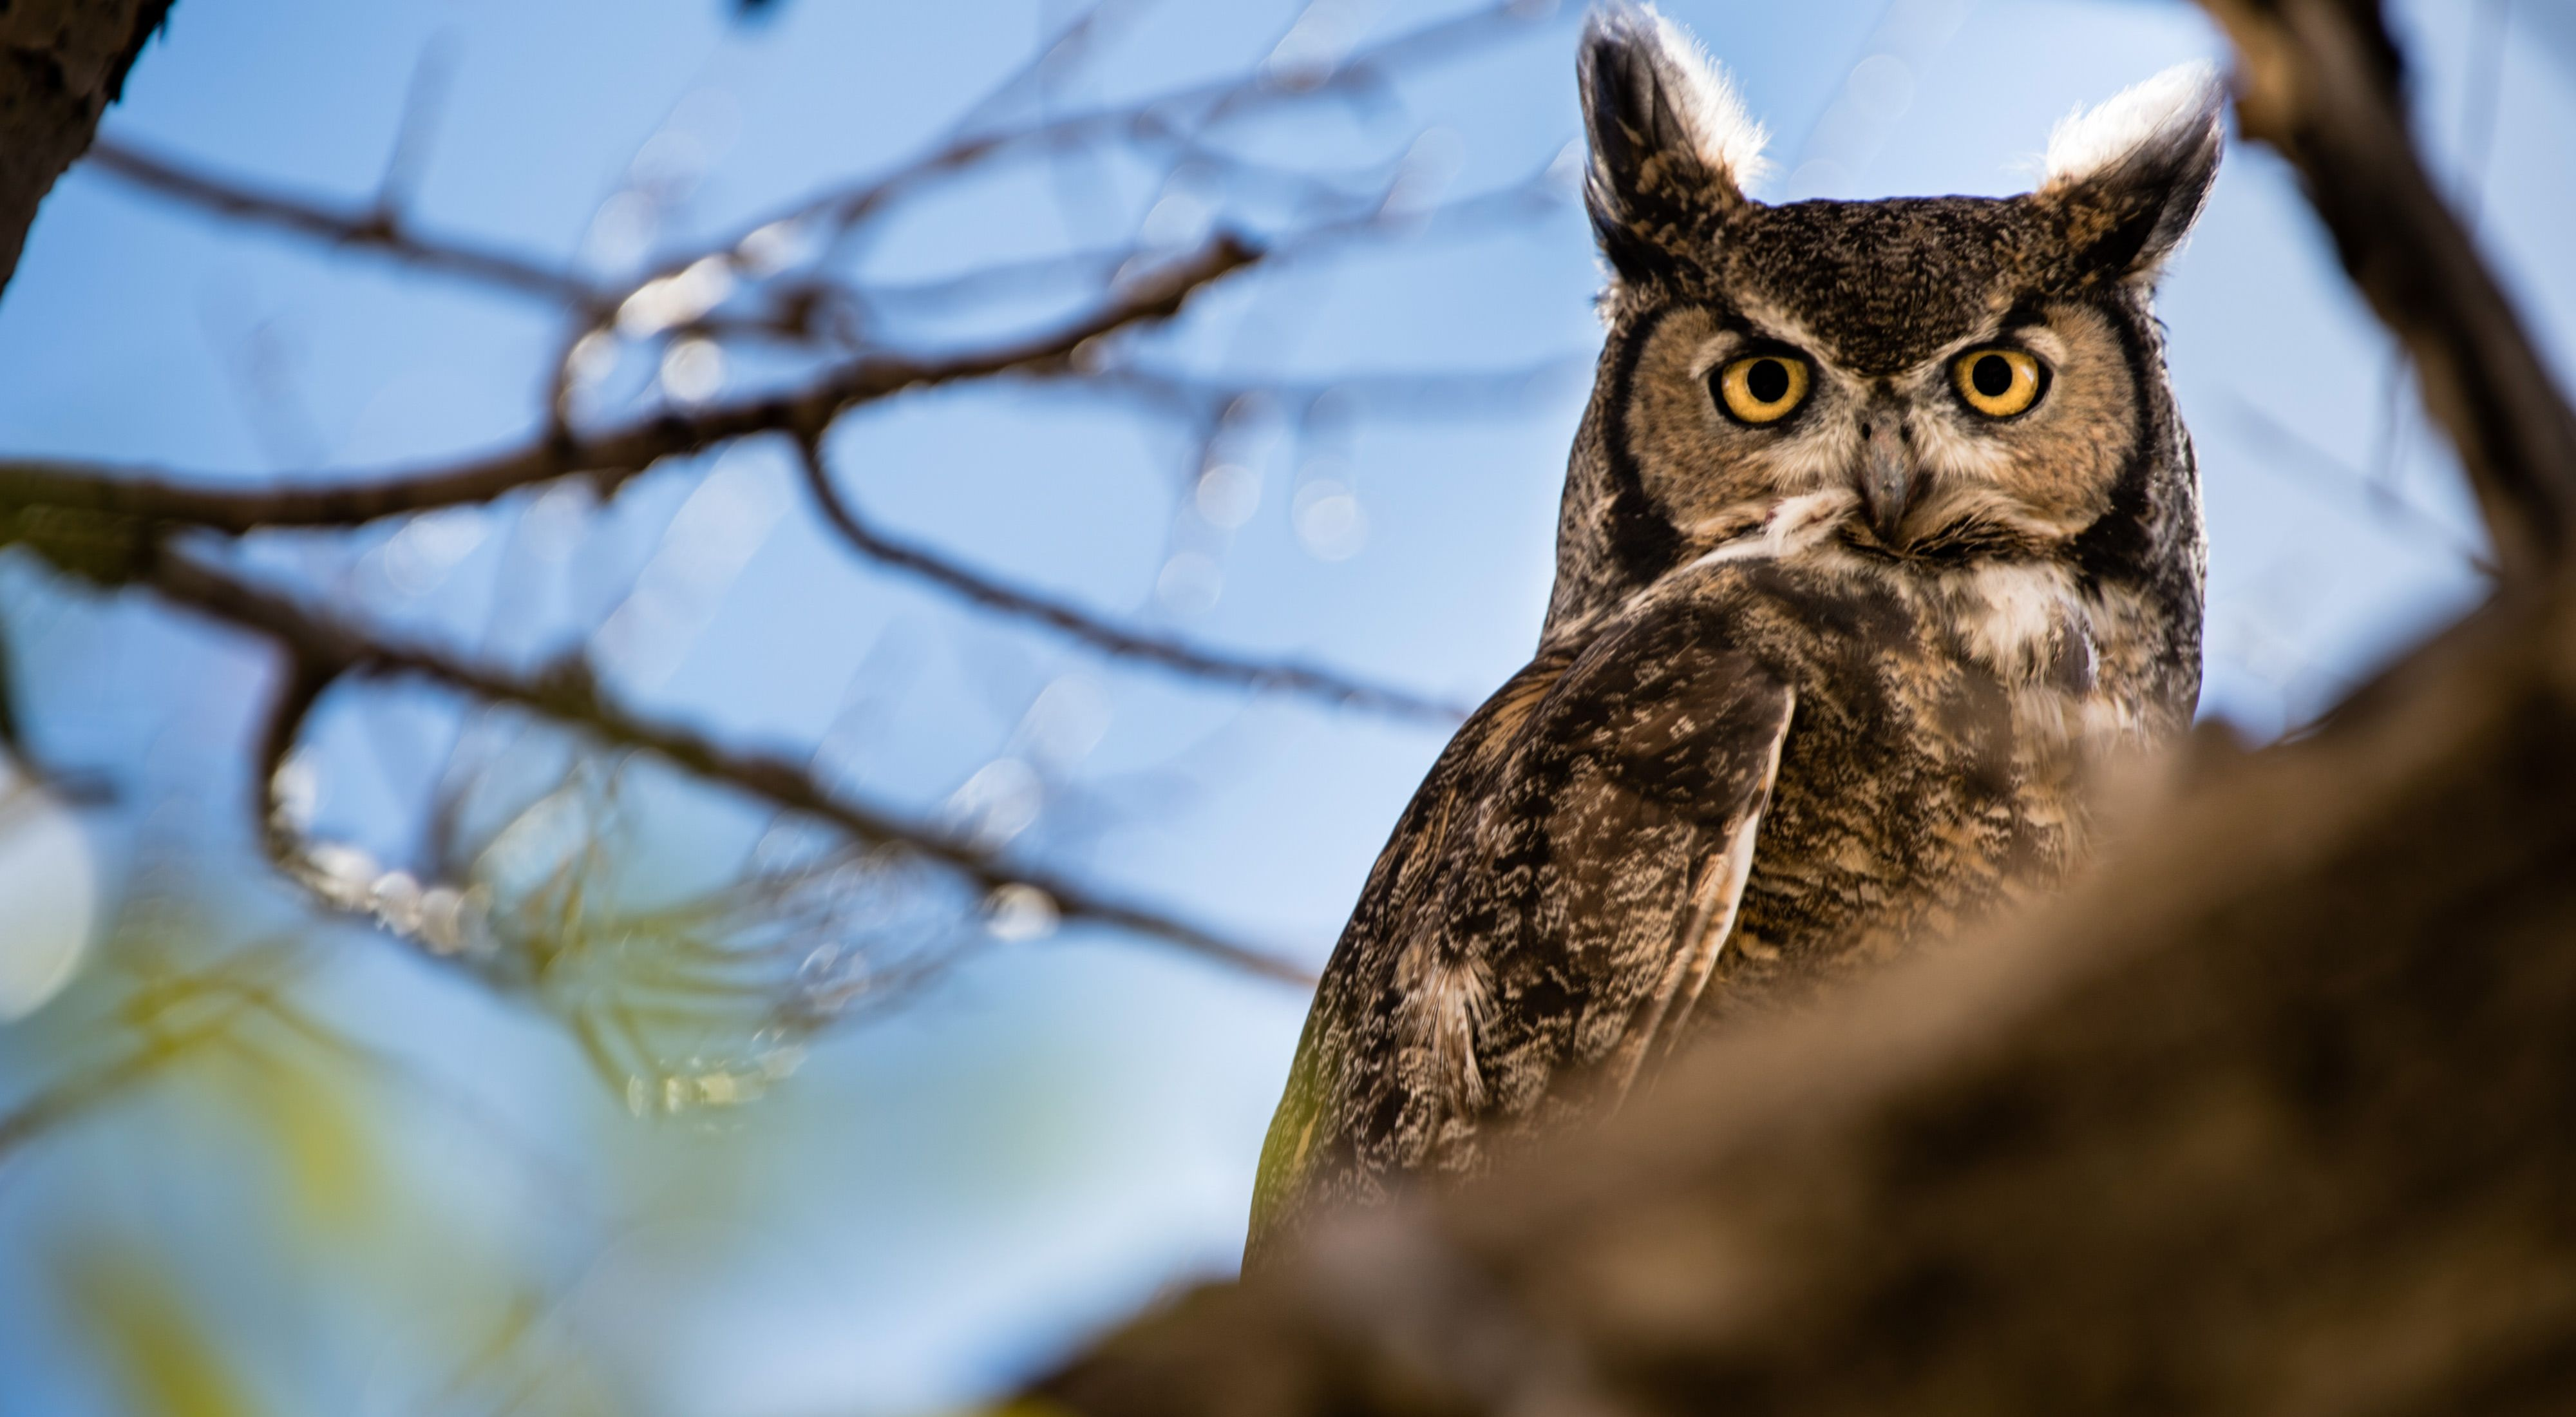 A great horned owl sitting on a tree branch.